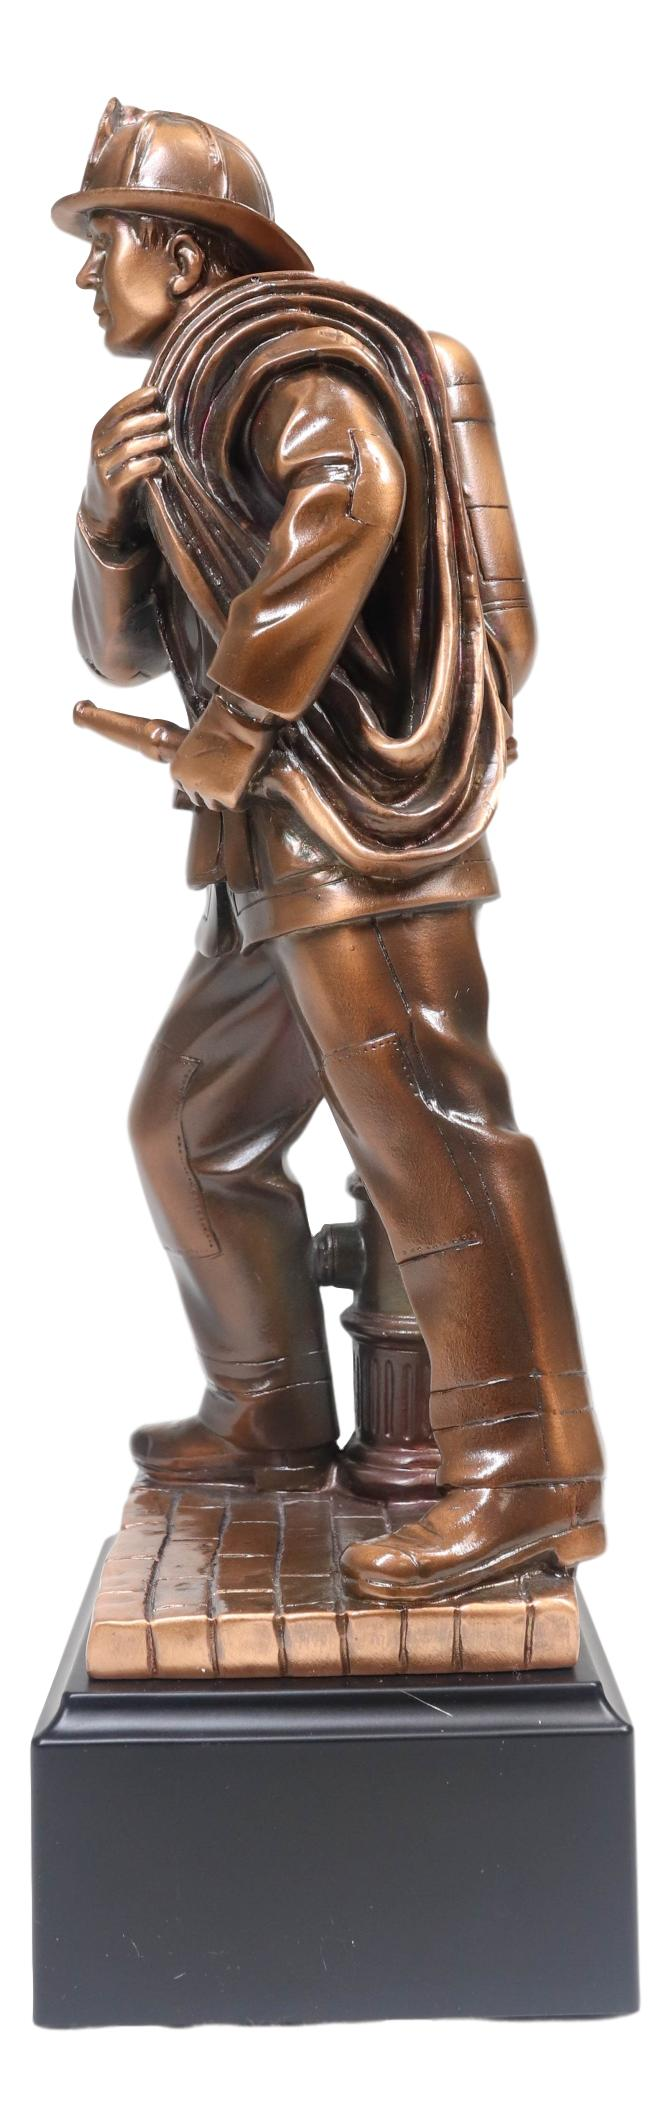 "In Line Of Duty Fireman Carrying Hose By Hydrant Statue 12""H Fire Fighter Decor"